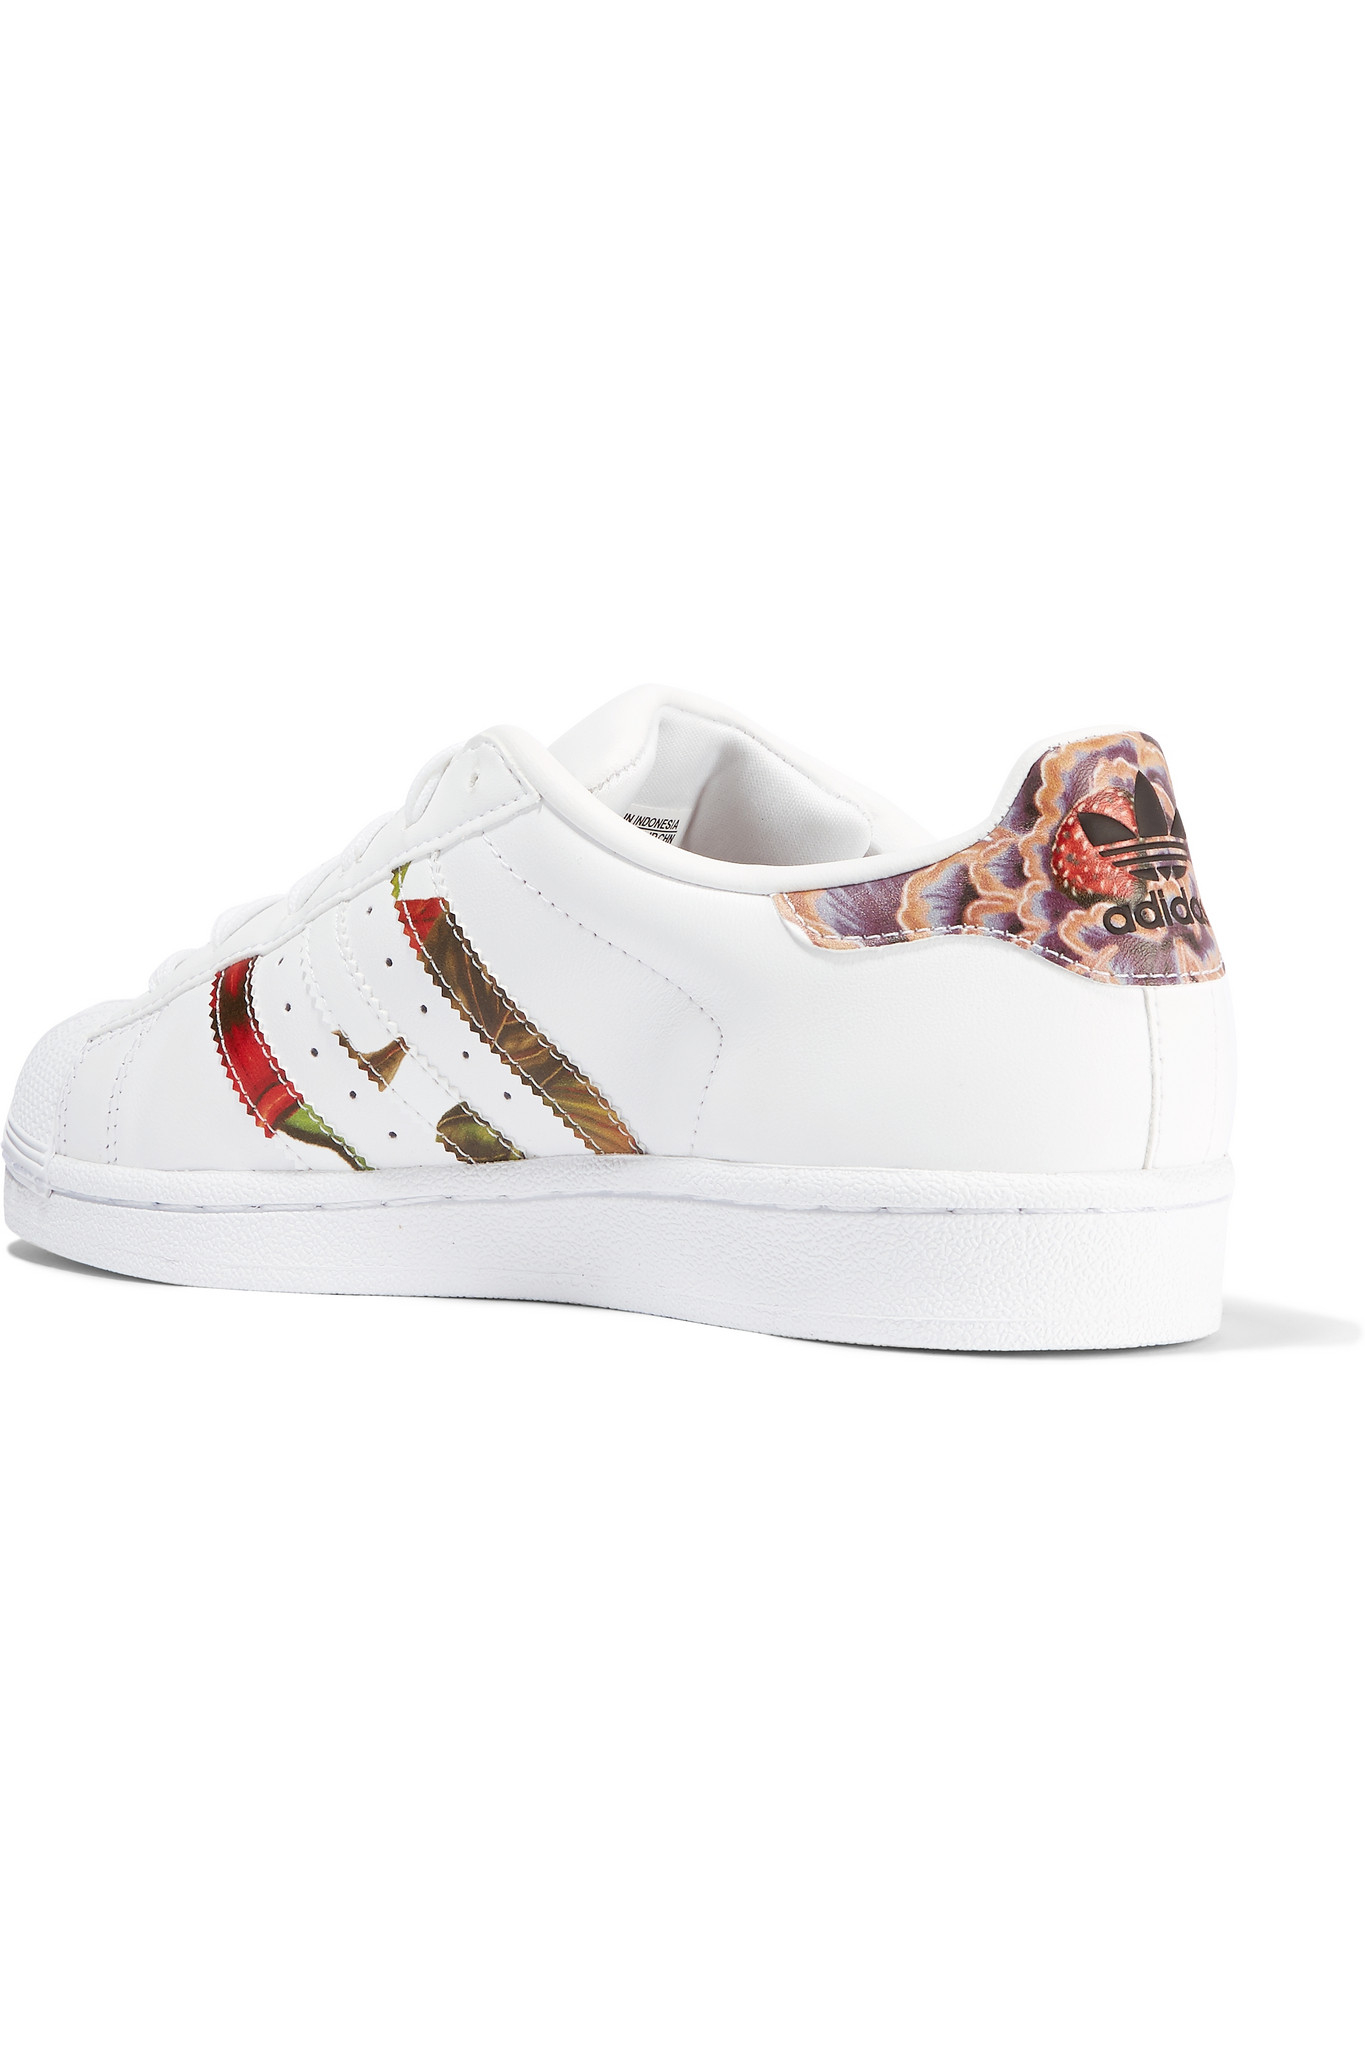 Cheap Adidas Skateboarding Superstar Vulc ADV White Skate Caliroots